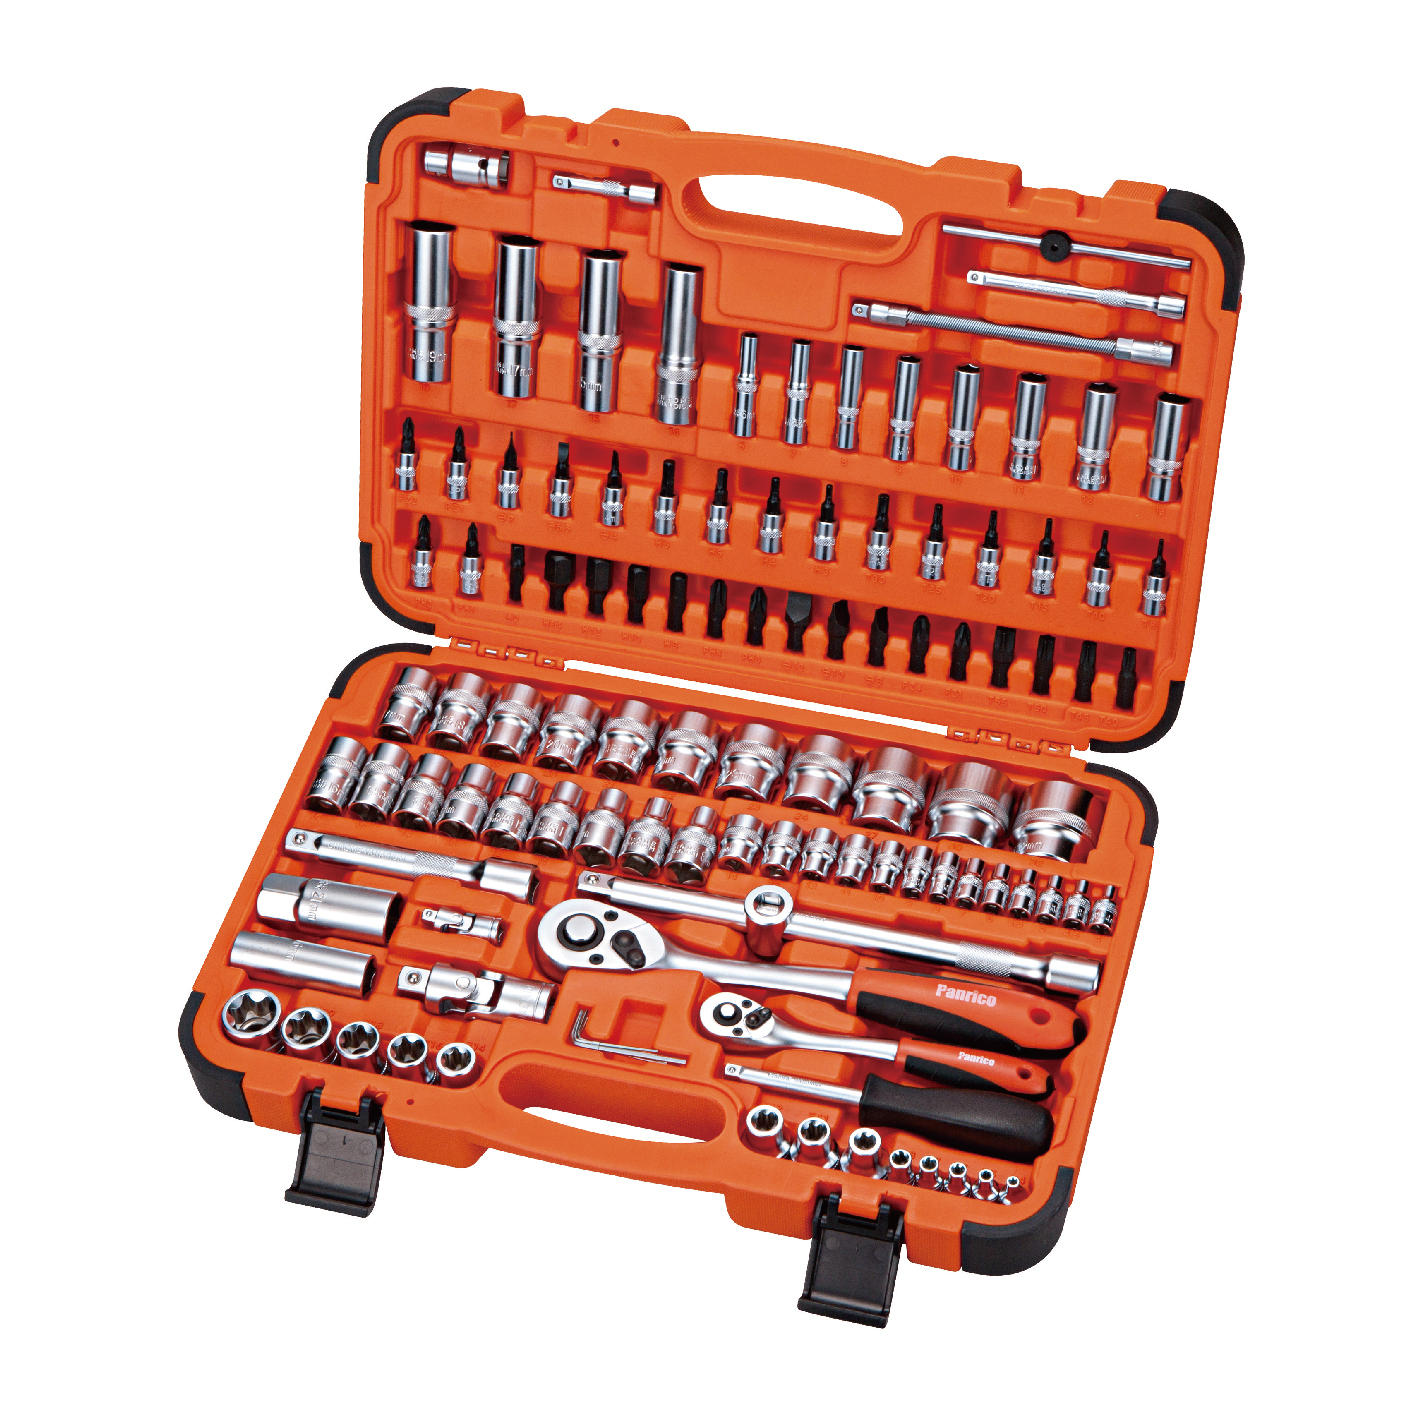 Truck / Agricultural / Heavy Duty Socket Sets for Repair Tool Set  made by GOLDEN ROOT CO., LTD     金根貿易股份有限公司 - MatchSupplier.com